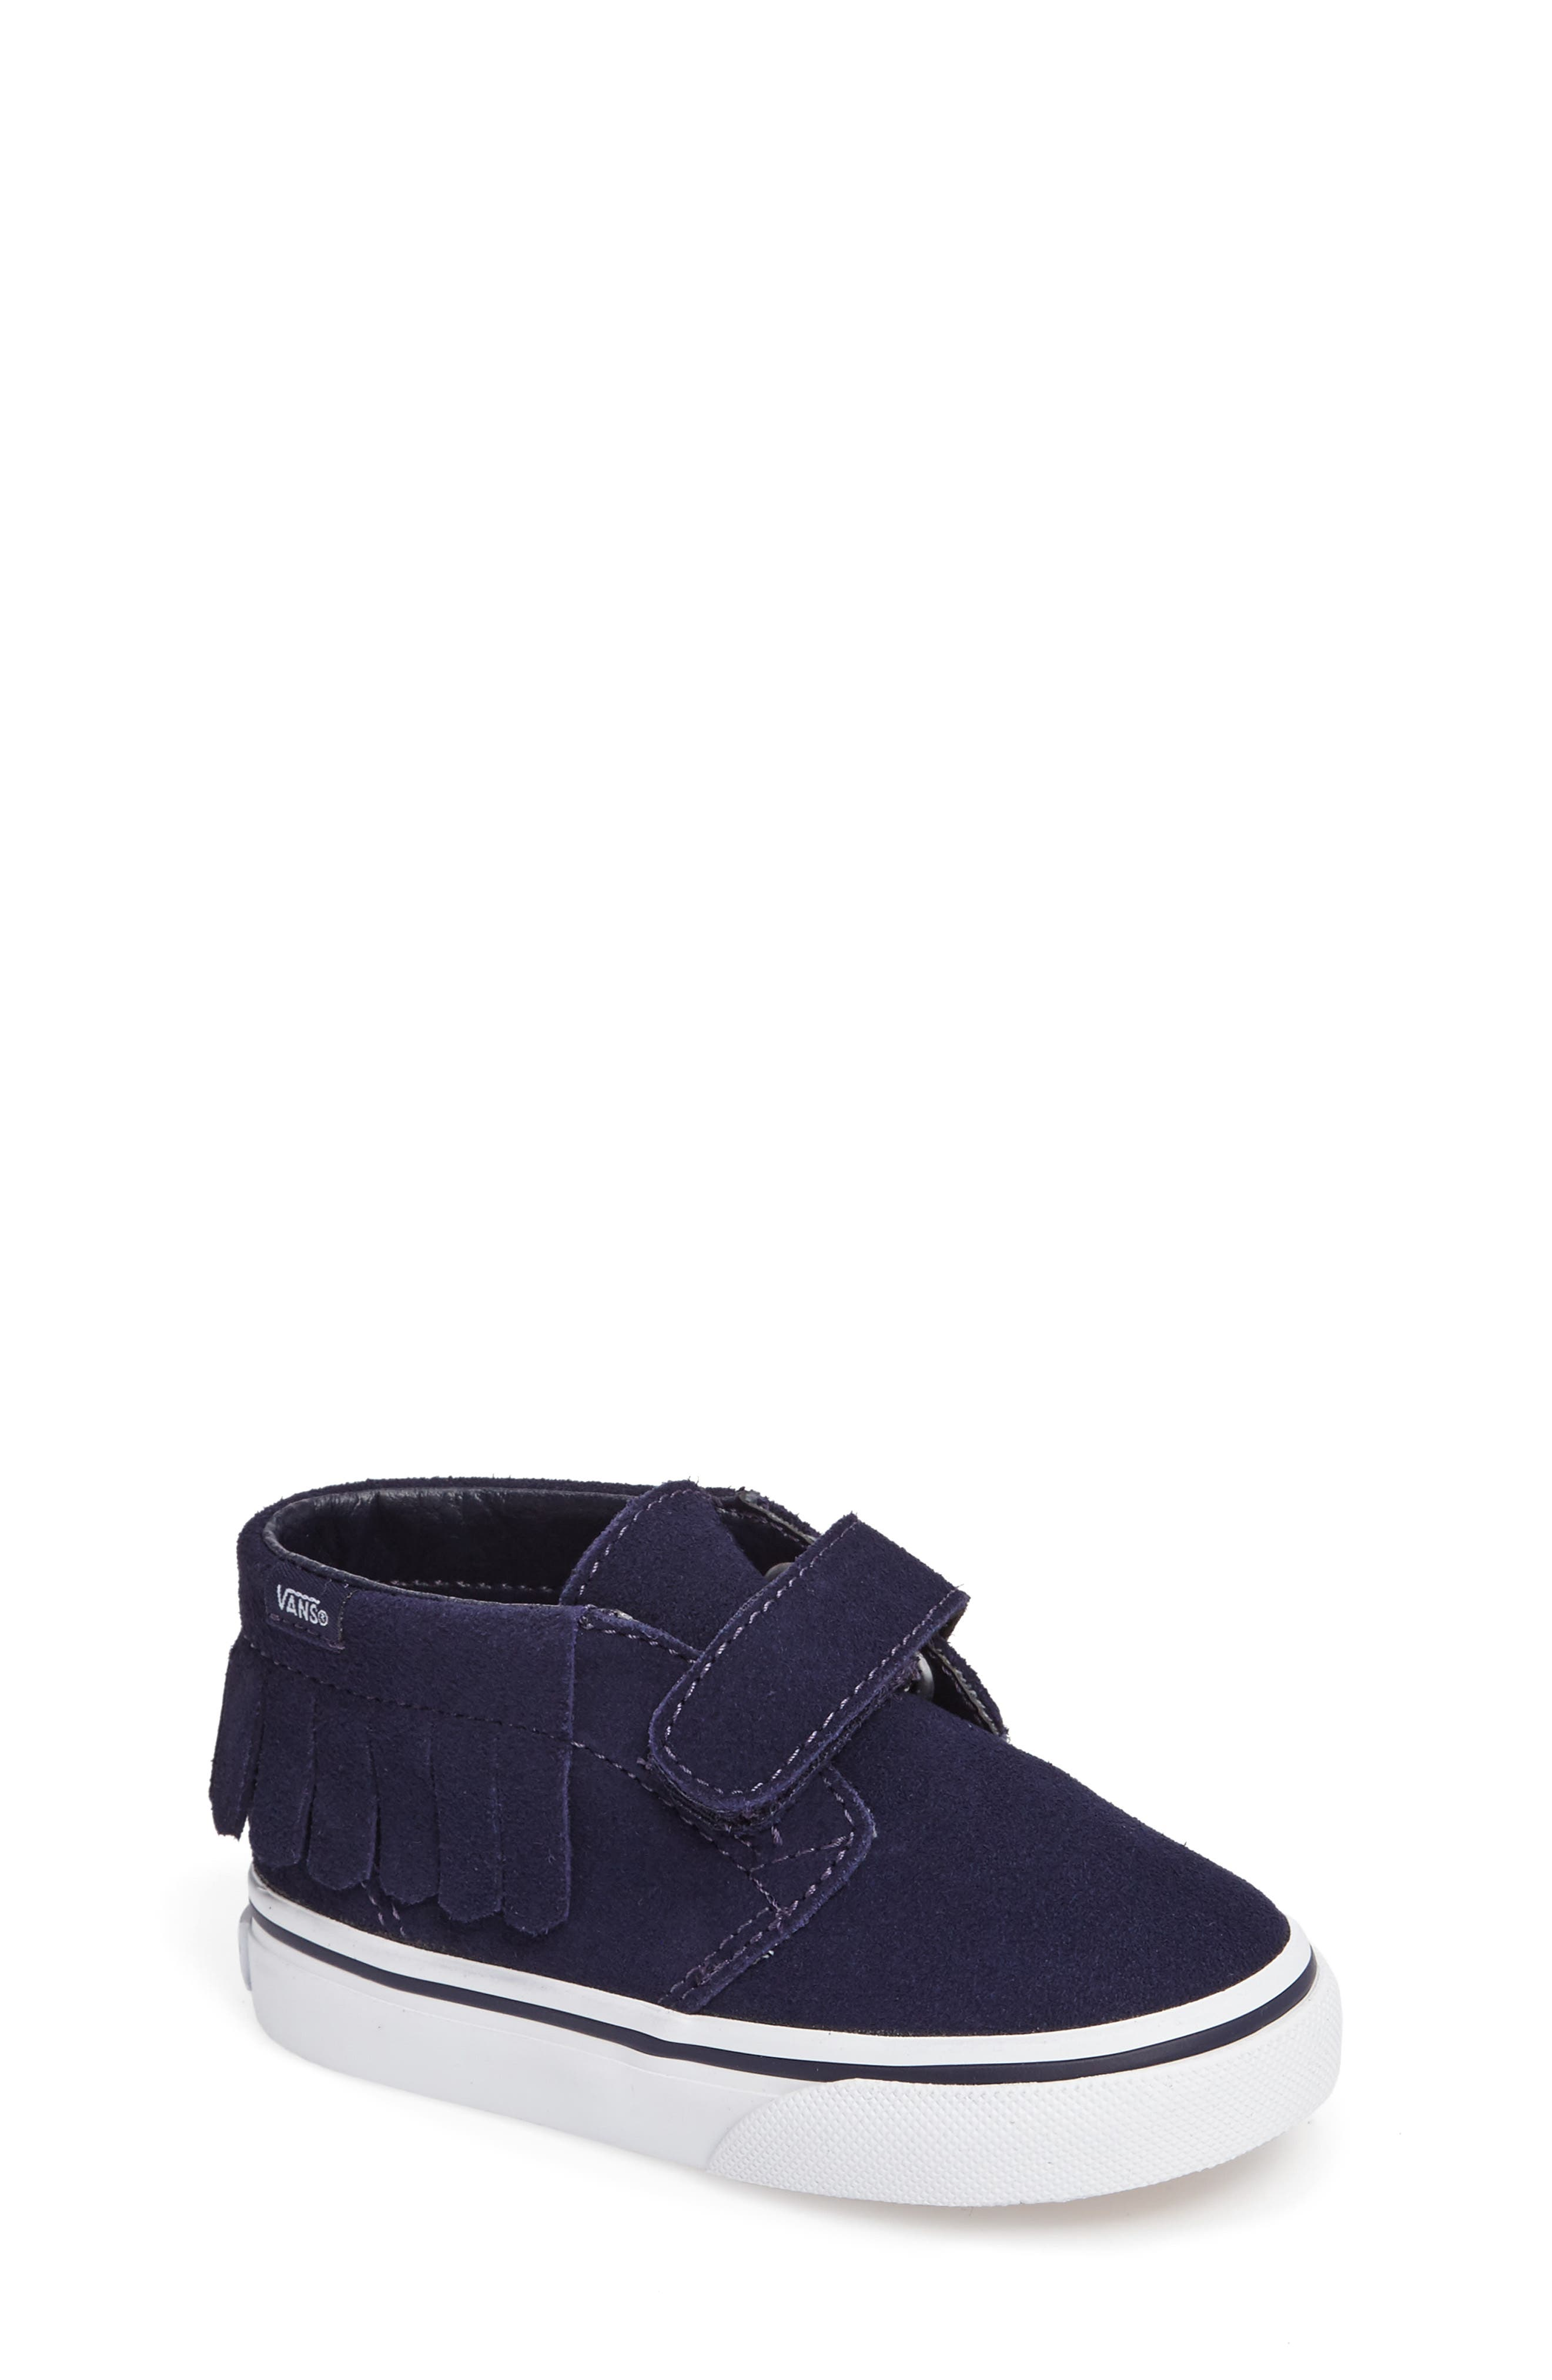 Chukka V Moc Slip-On,                             Main thumbnail 1, color,                             Bel Air Blue Suede